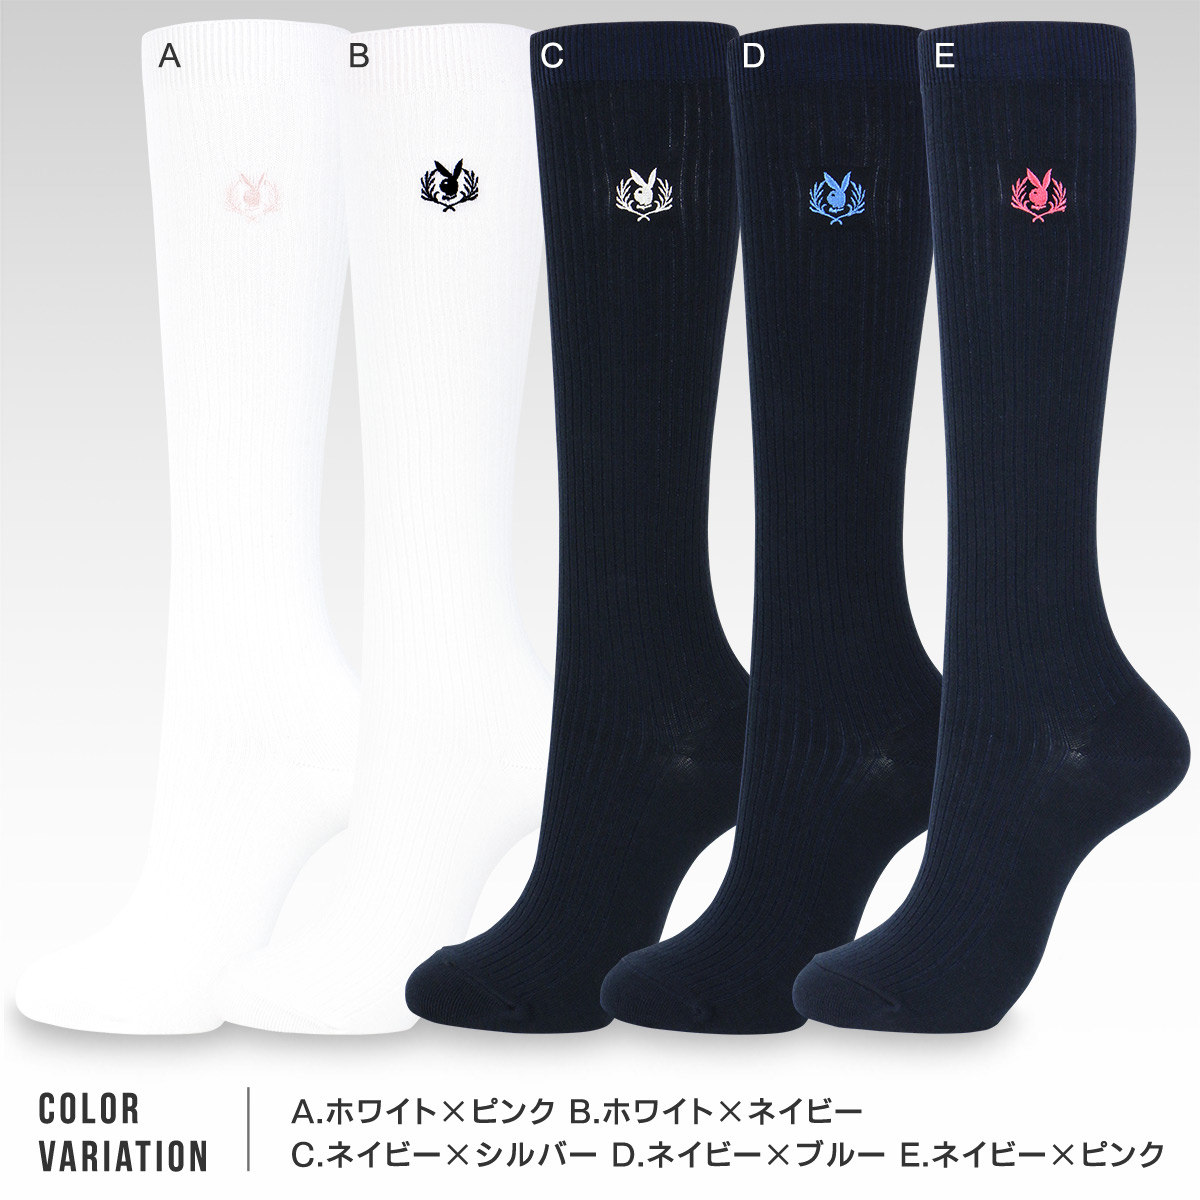 PLAYBOY - School socks / Girl's Knee-high socks / 36cm length [ Embroidery Bunny Emblem logo ] / 3737-693 / All Items - Point x 10 !!